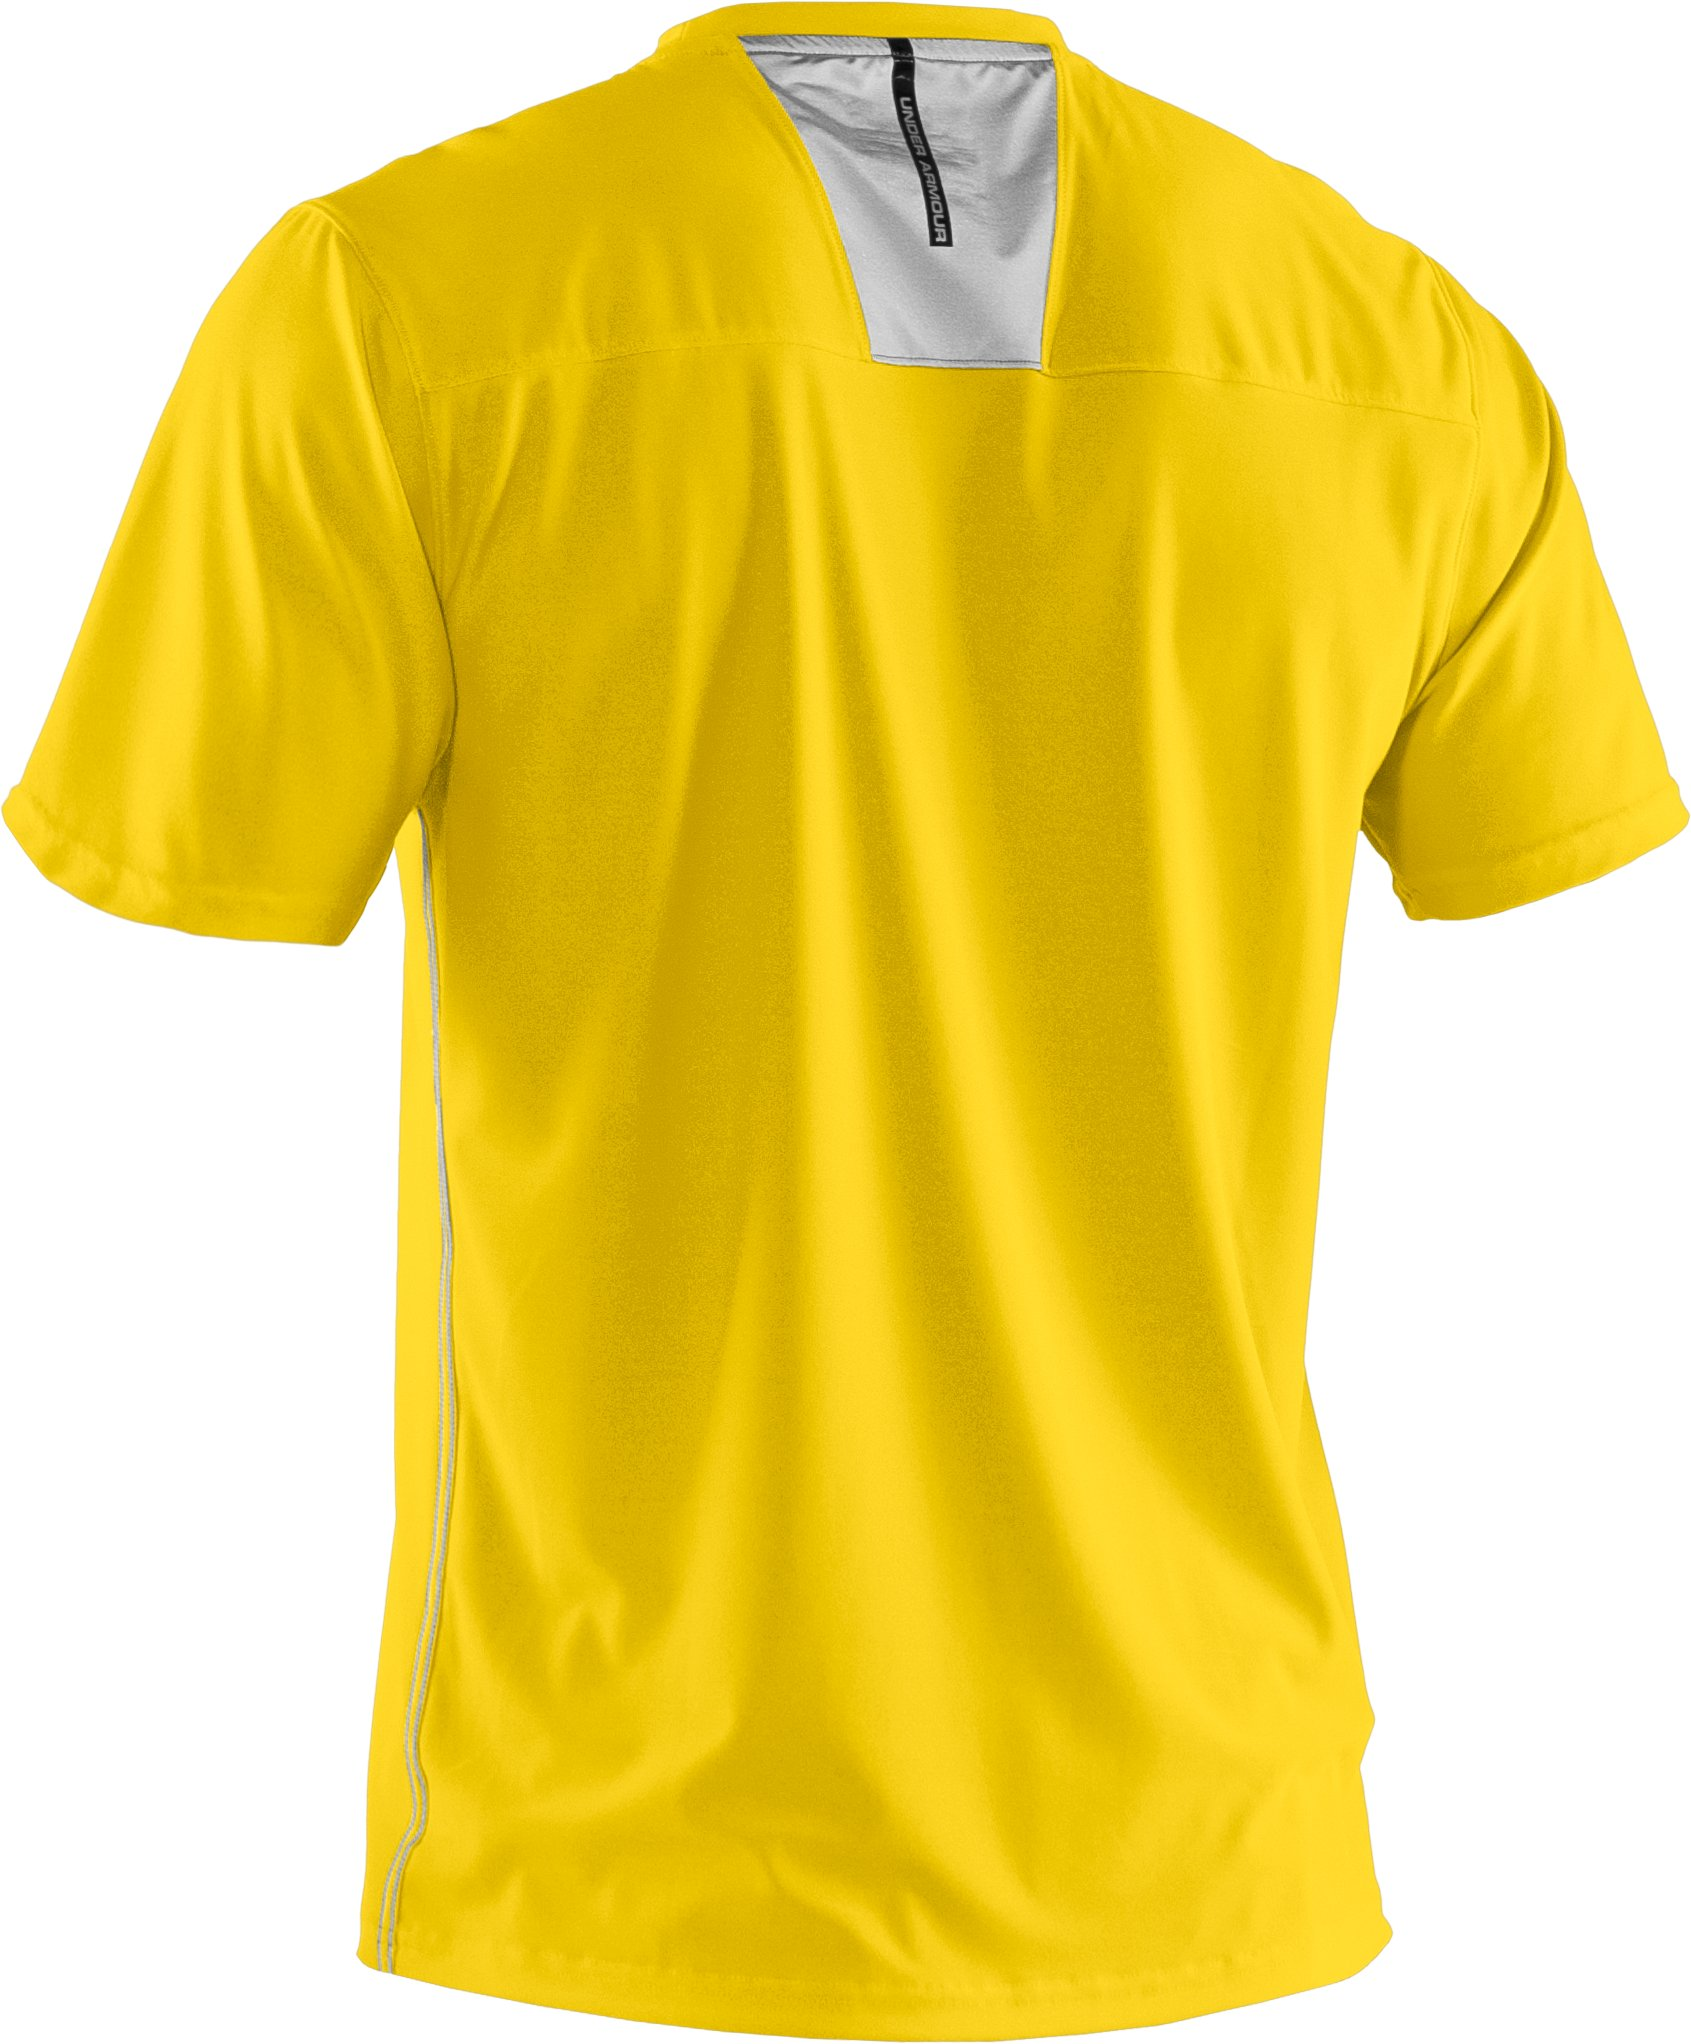 Men's coldblack® Short Sleeve T-Shirt, Taxi,